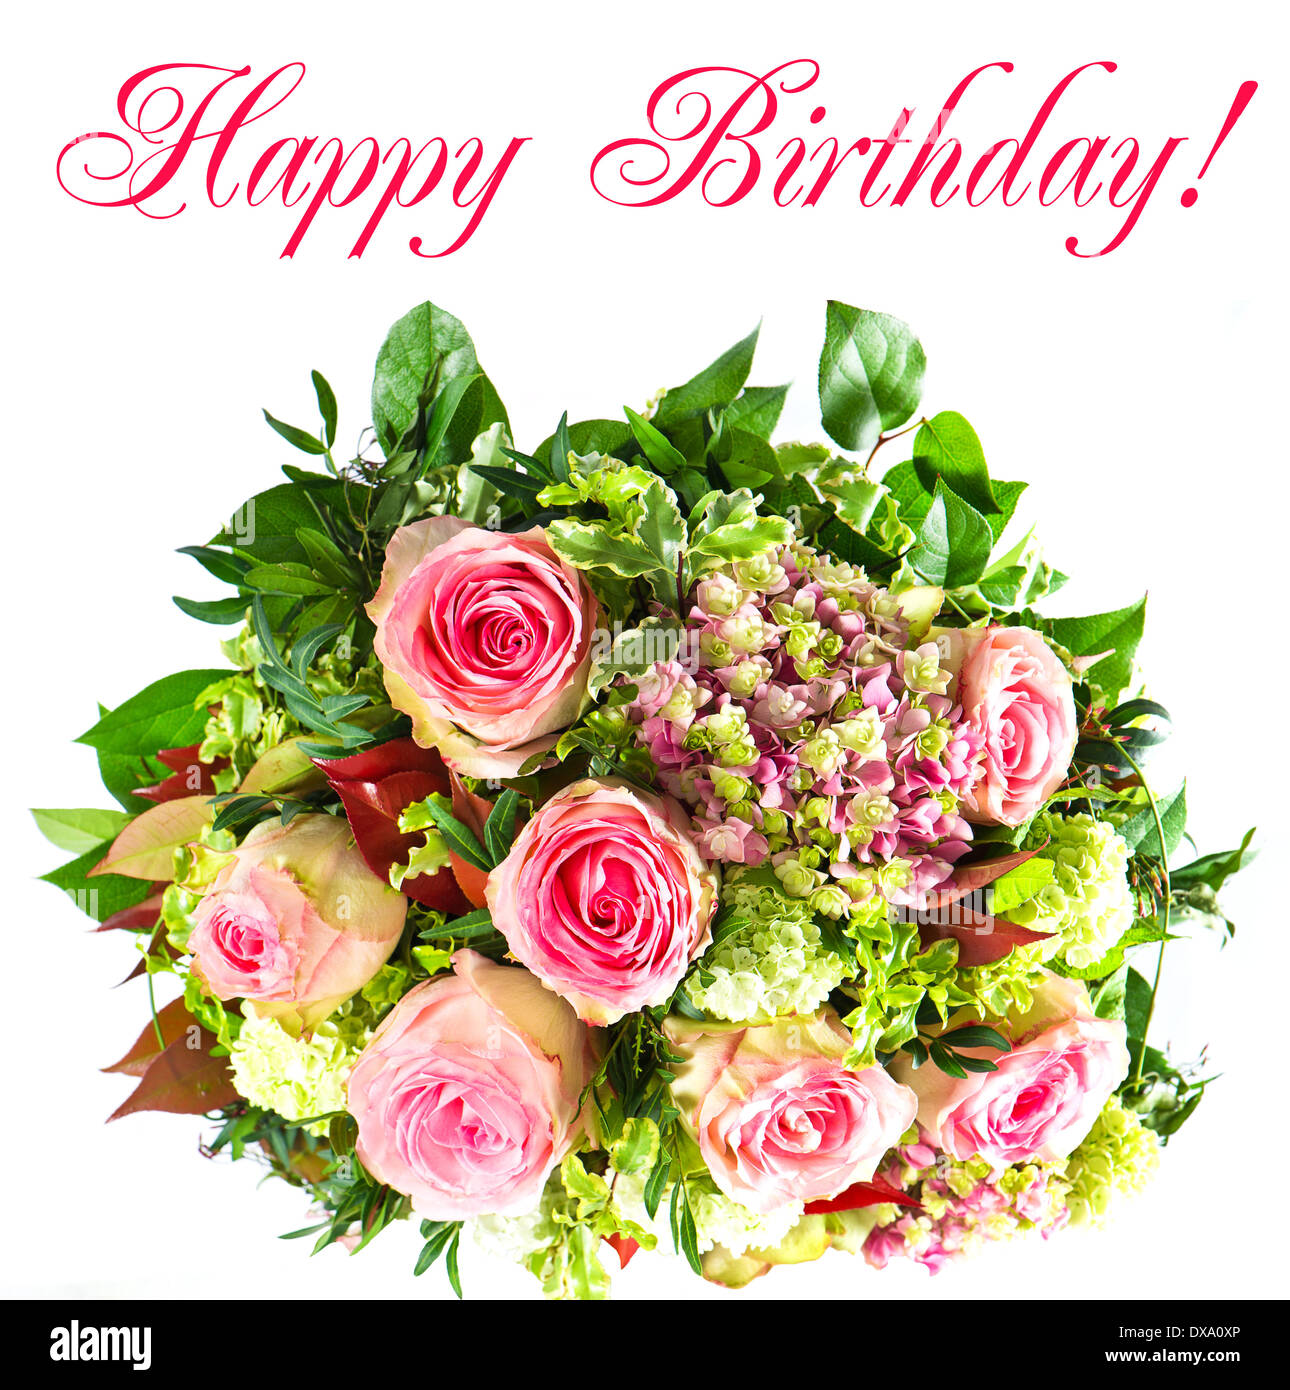 Colorful flowers bouquet happy birthday stock photo 67832430 alamy colorful flowers bouquet happy birthday izmirmasajfo